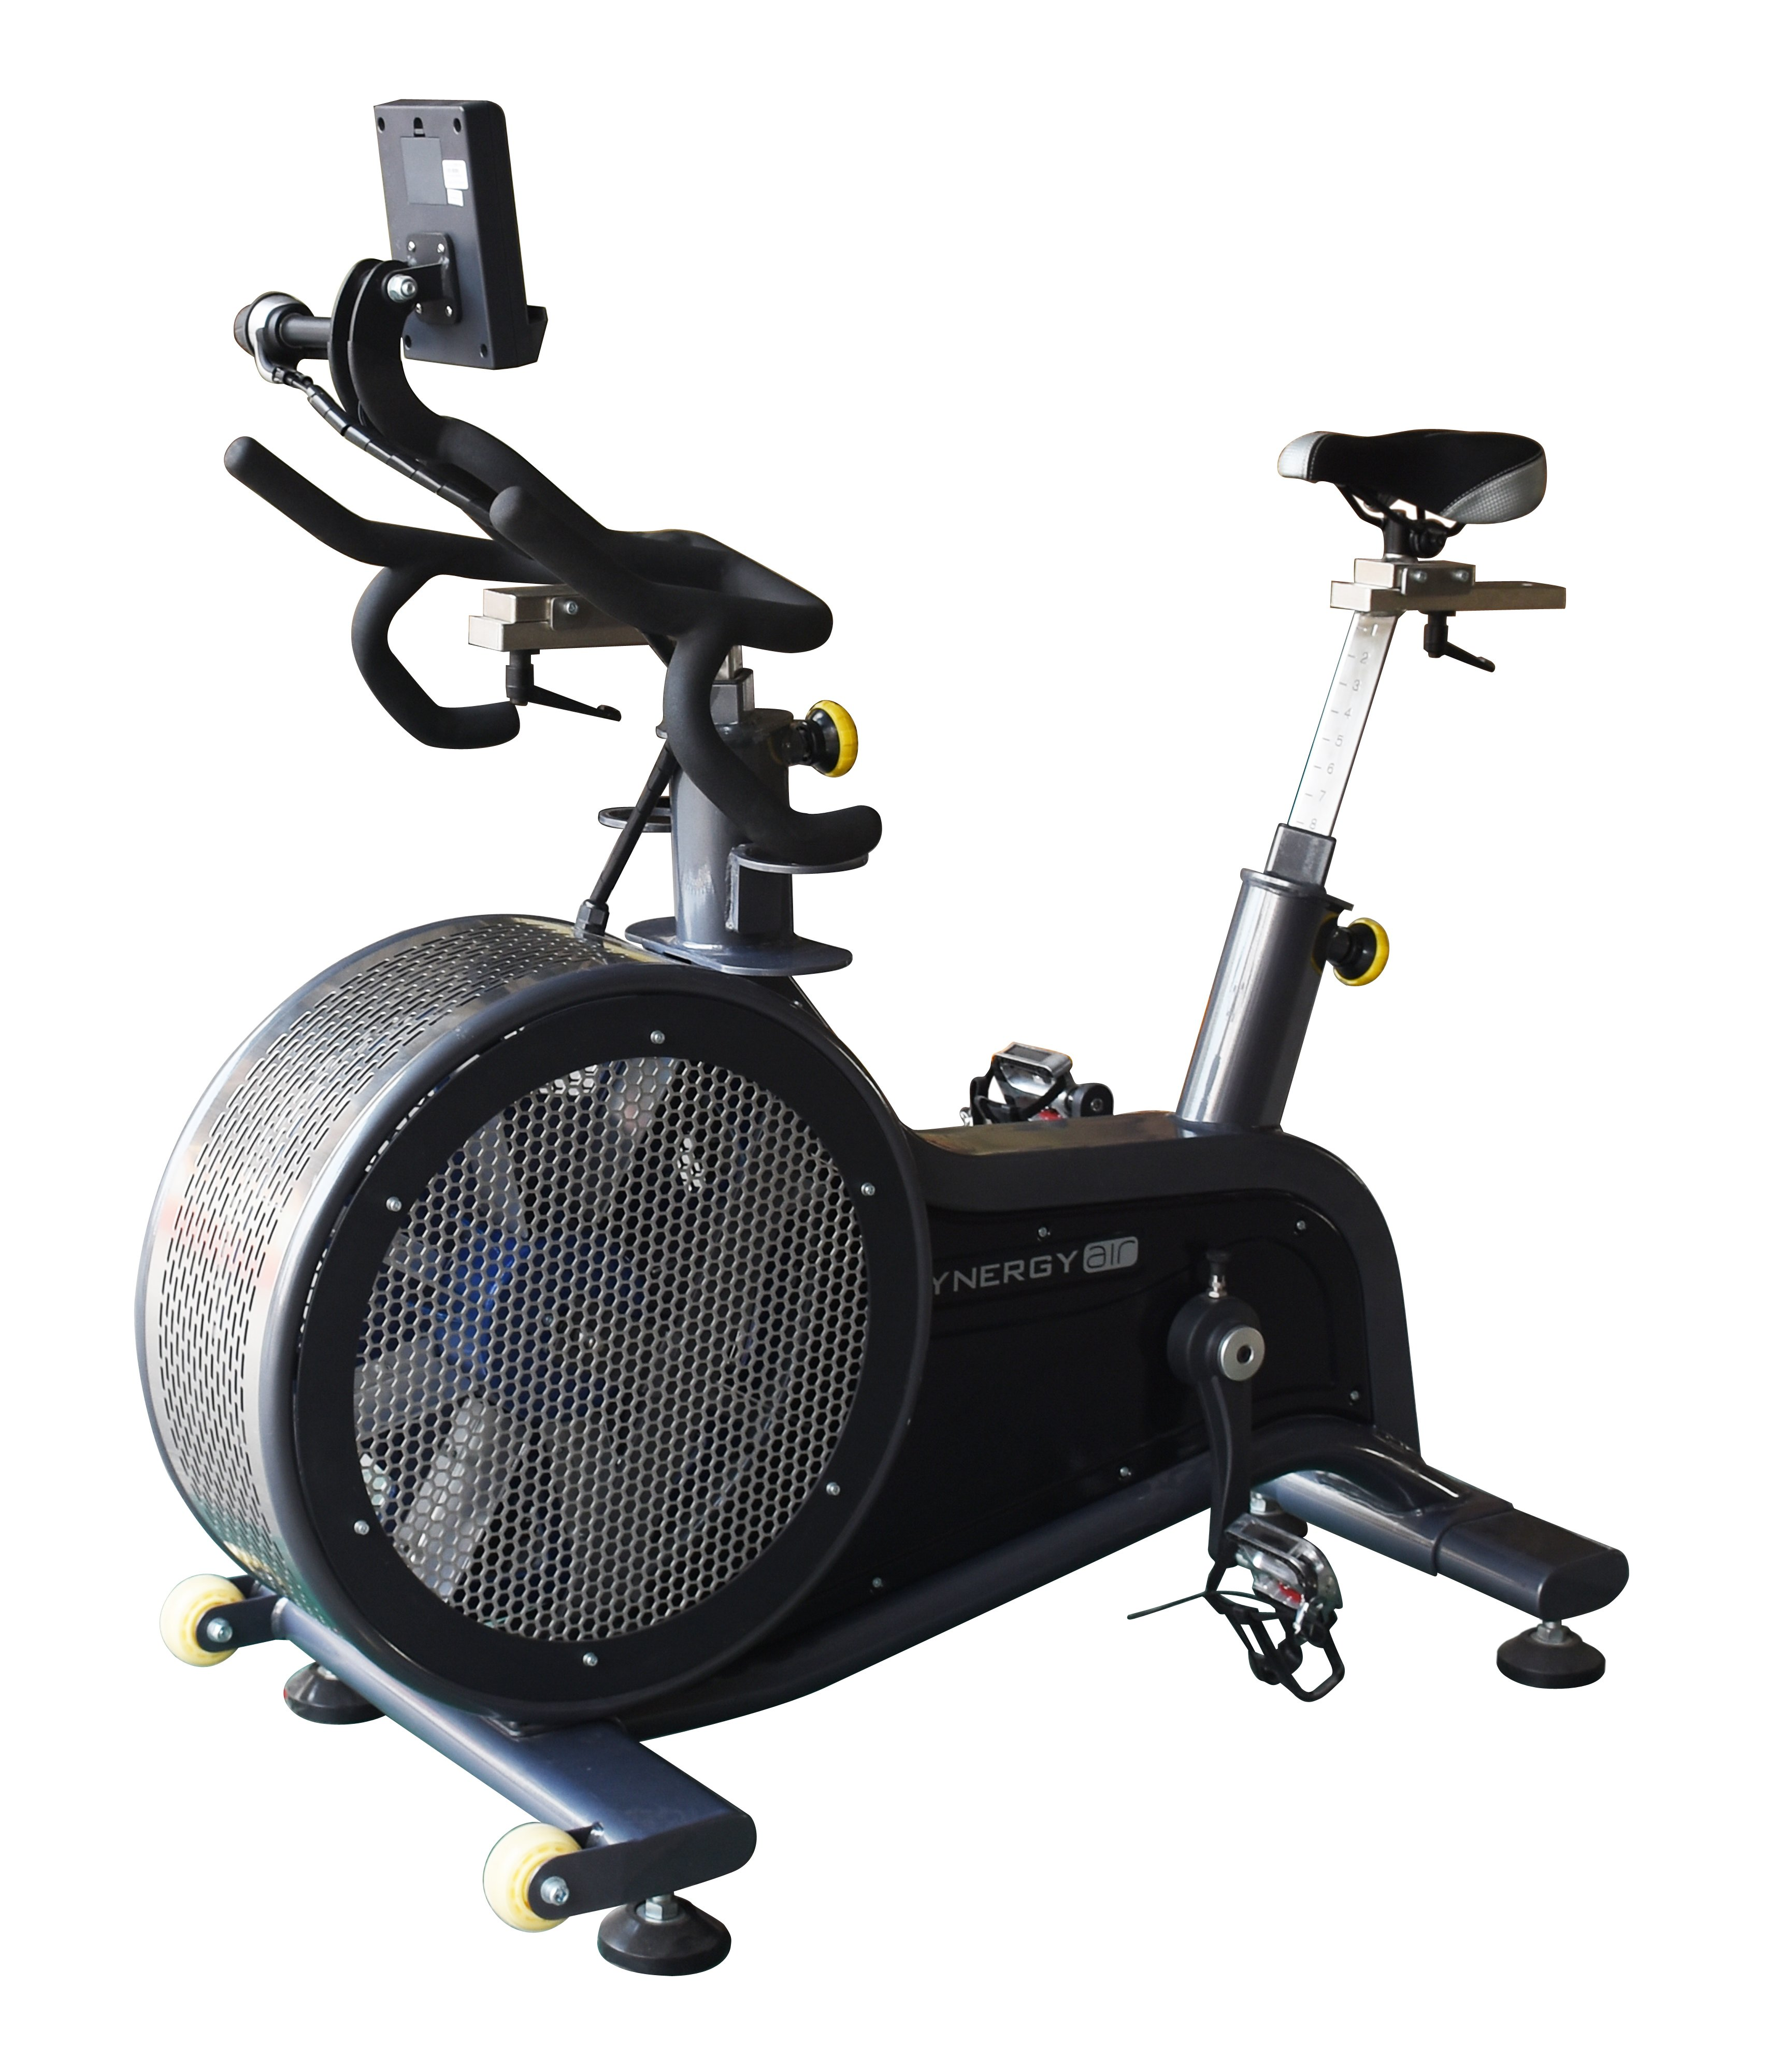 SynergyAIR Power Cycle